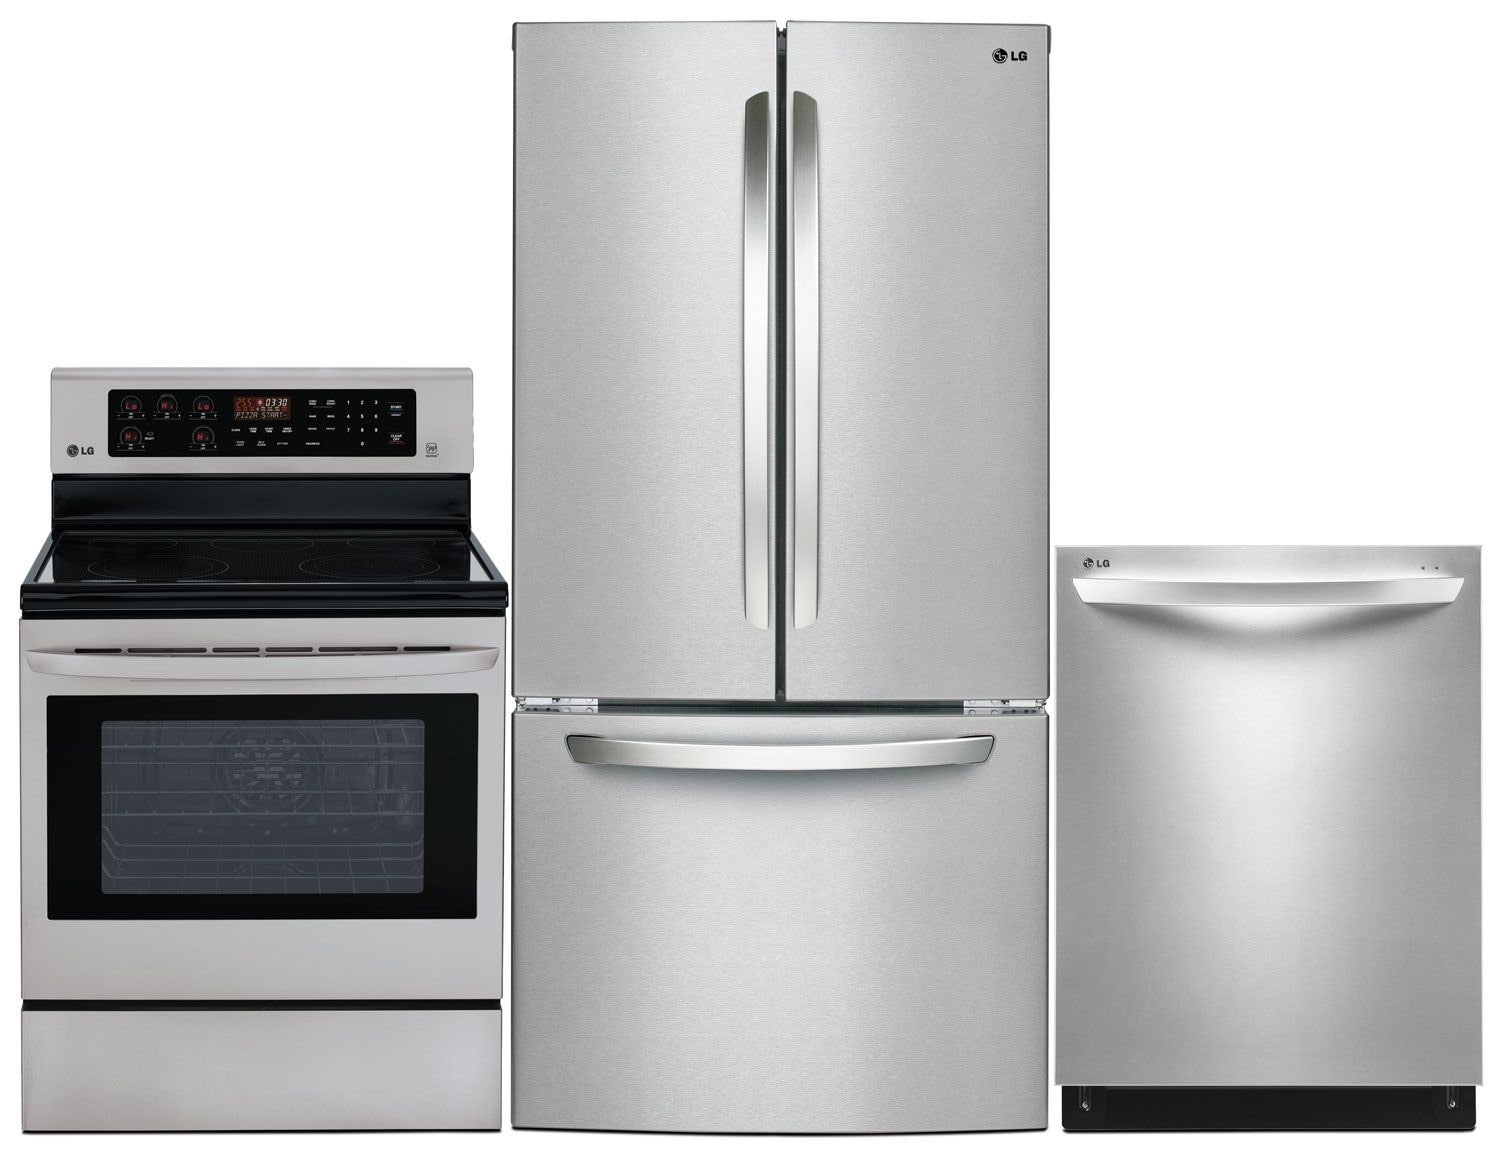 Clean-Up - LG 24 Cu. Ft. Refrigerator, 6.3 Cu. Ft. Electric Range and Built-In Dishwasher